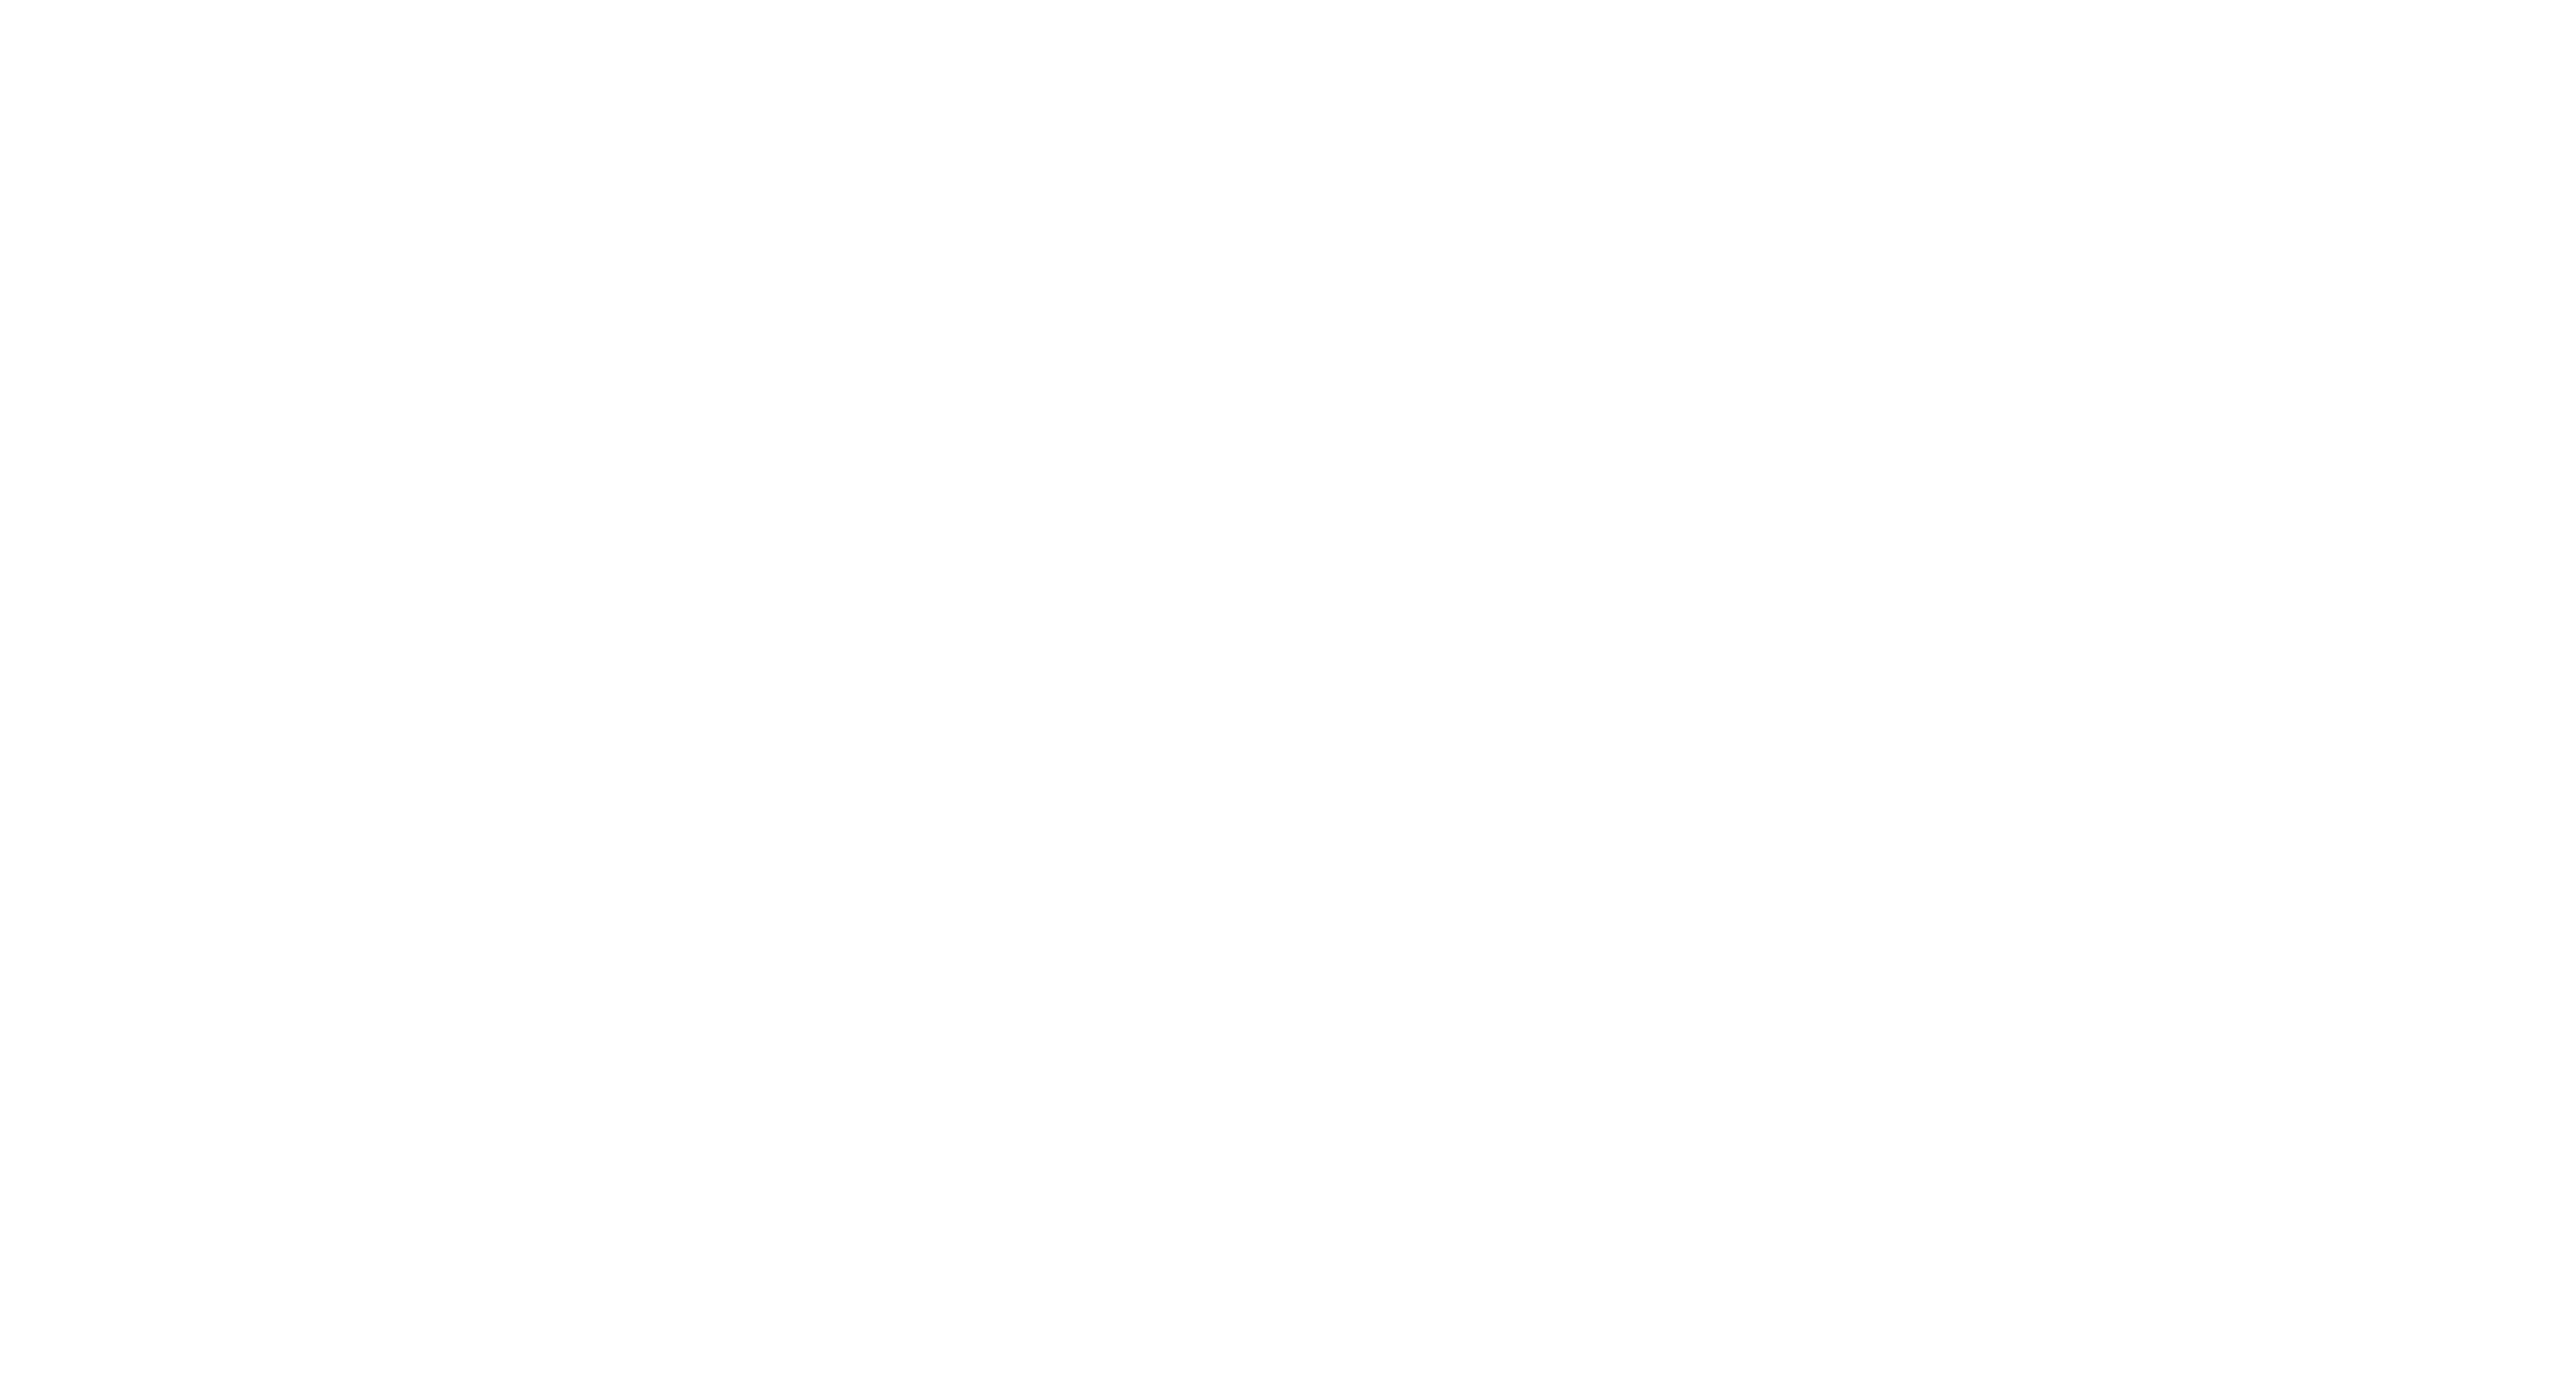 ADJ Business Solutions